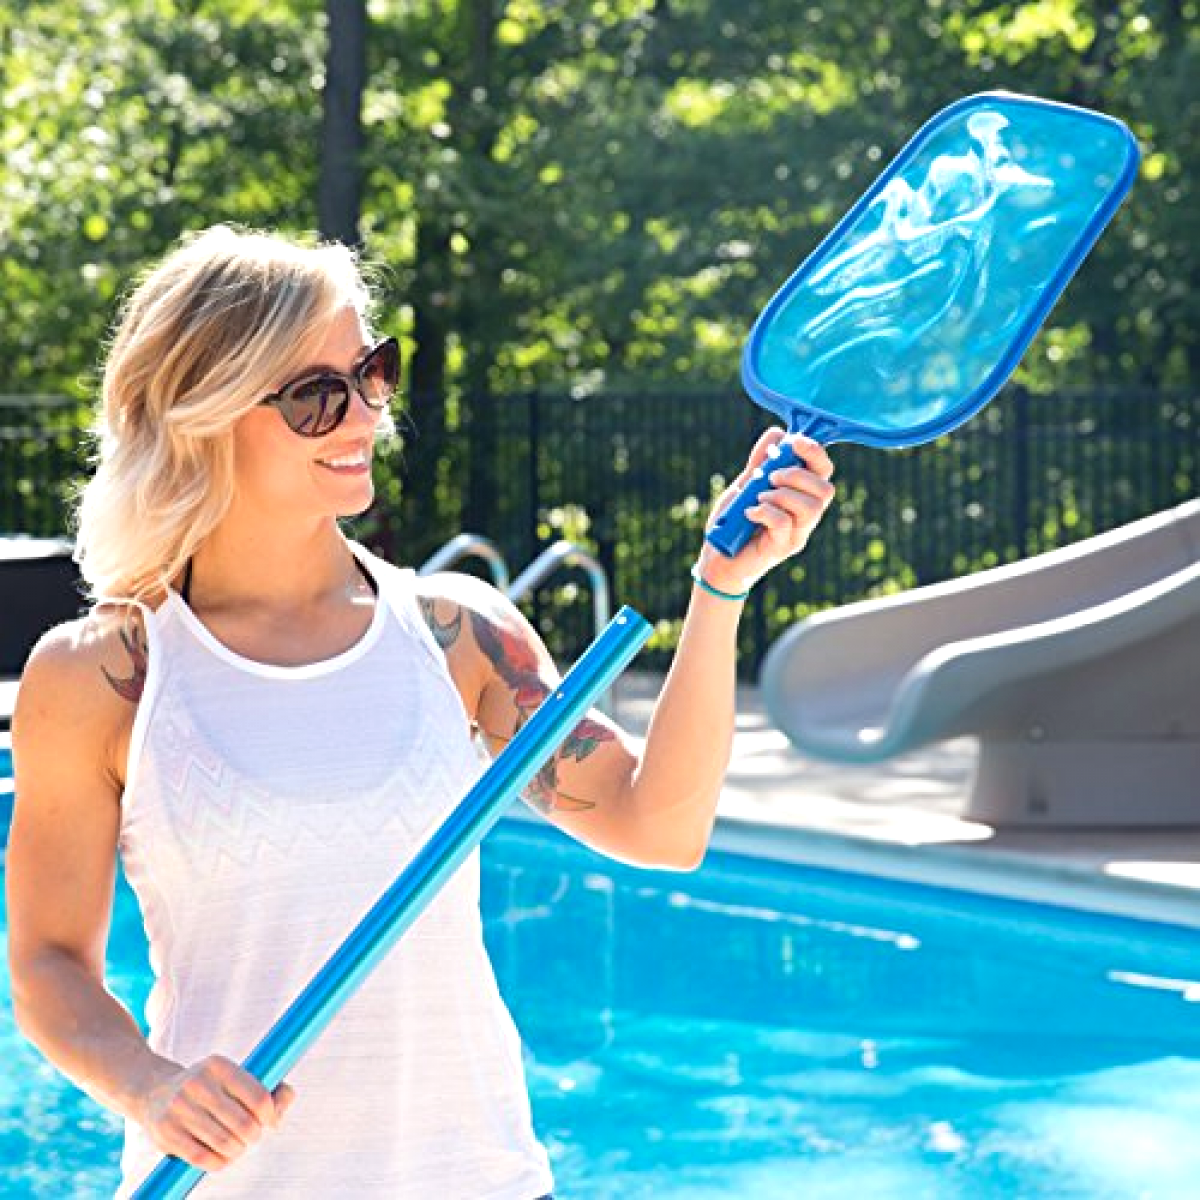 Pool Skimmer for Cleaning Swimming Pool Supplies Cleaner Mesh Net Leaf Catcher